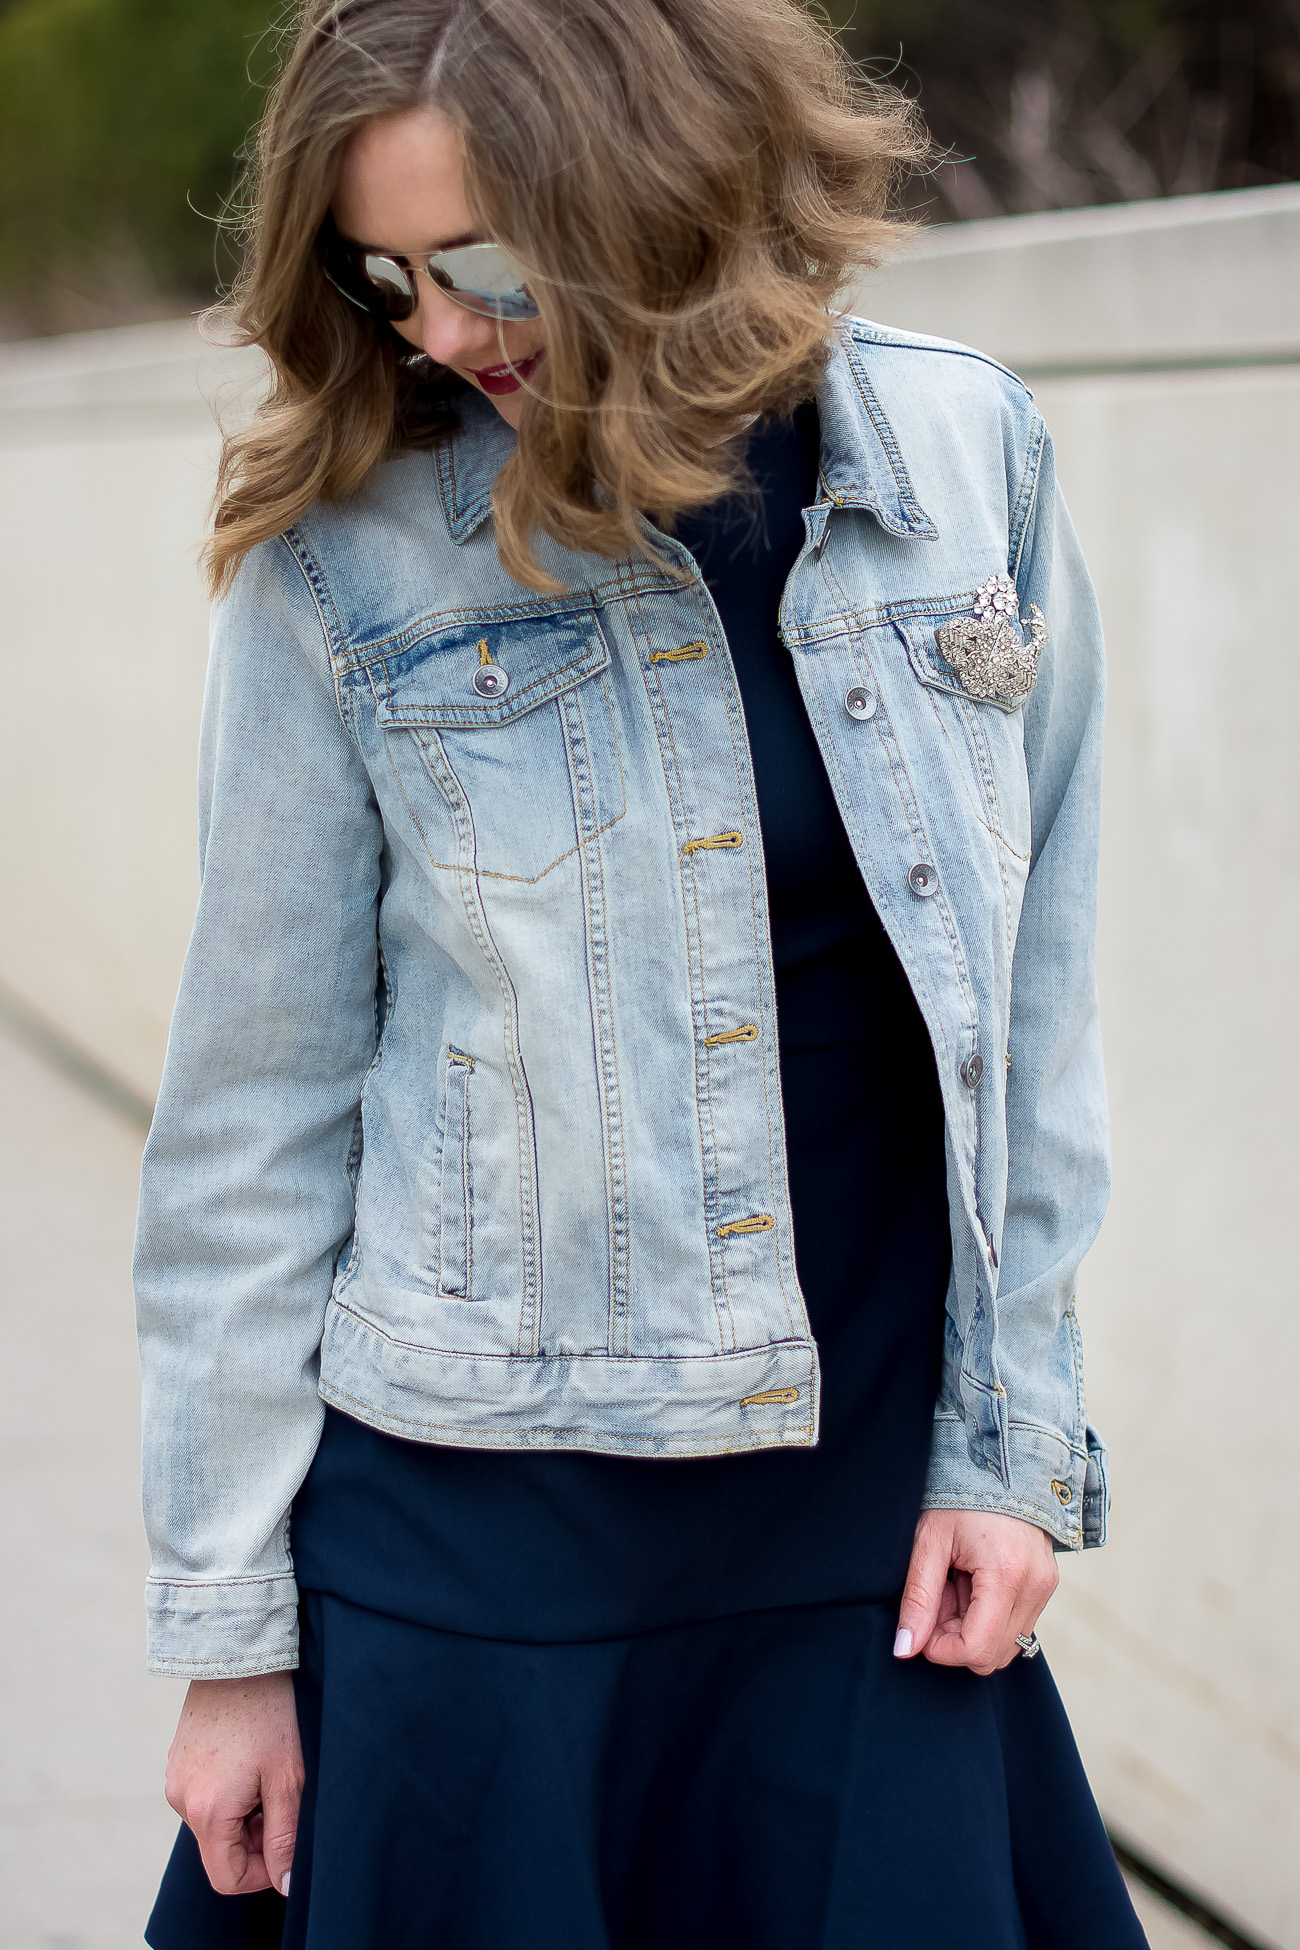 target-light-wash-denim-jacket-banana-republic-fit-and-flare-dress-vintage-rhinestone-brooches-mirrored-aviators-vintage-meets-modern-outfit-6